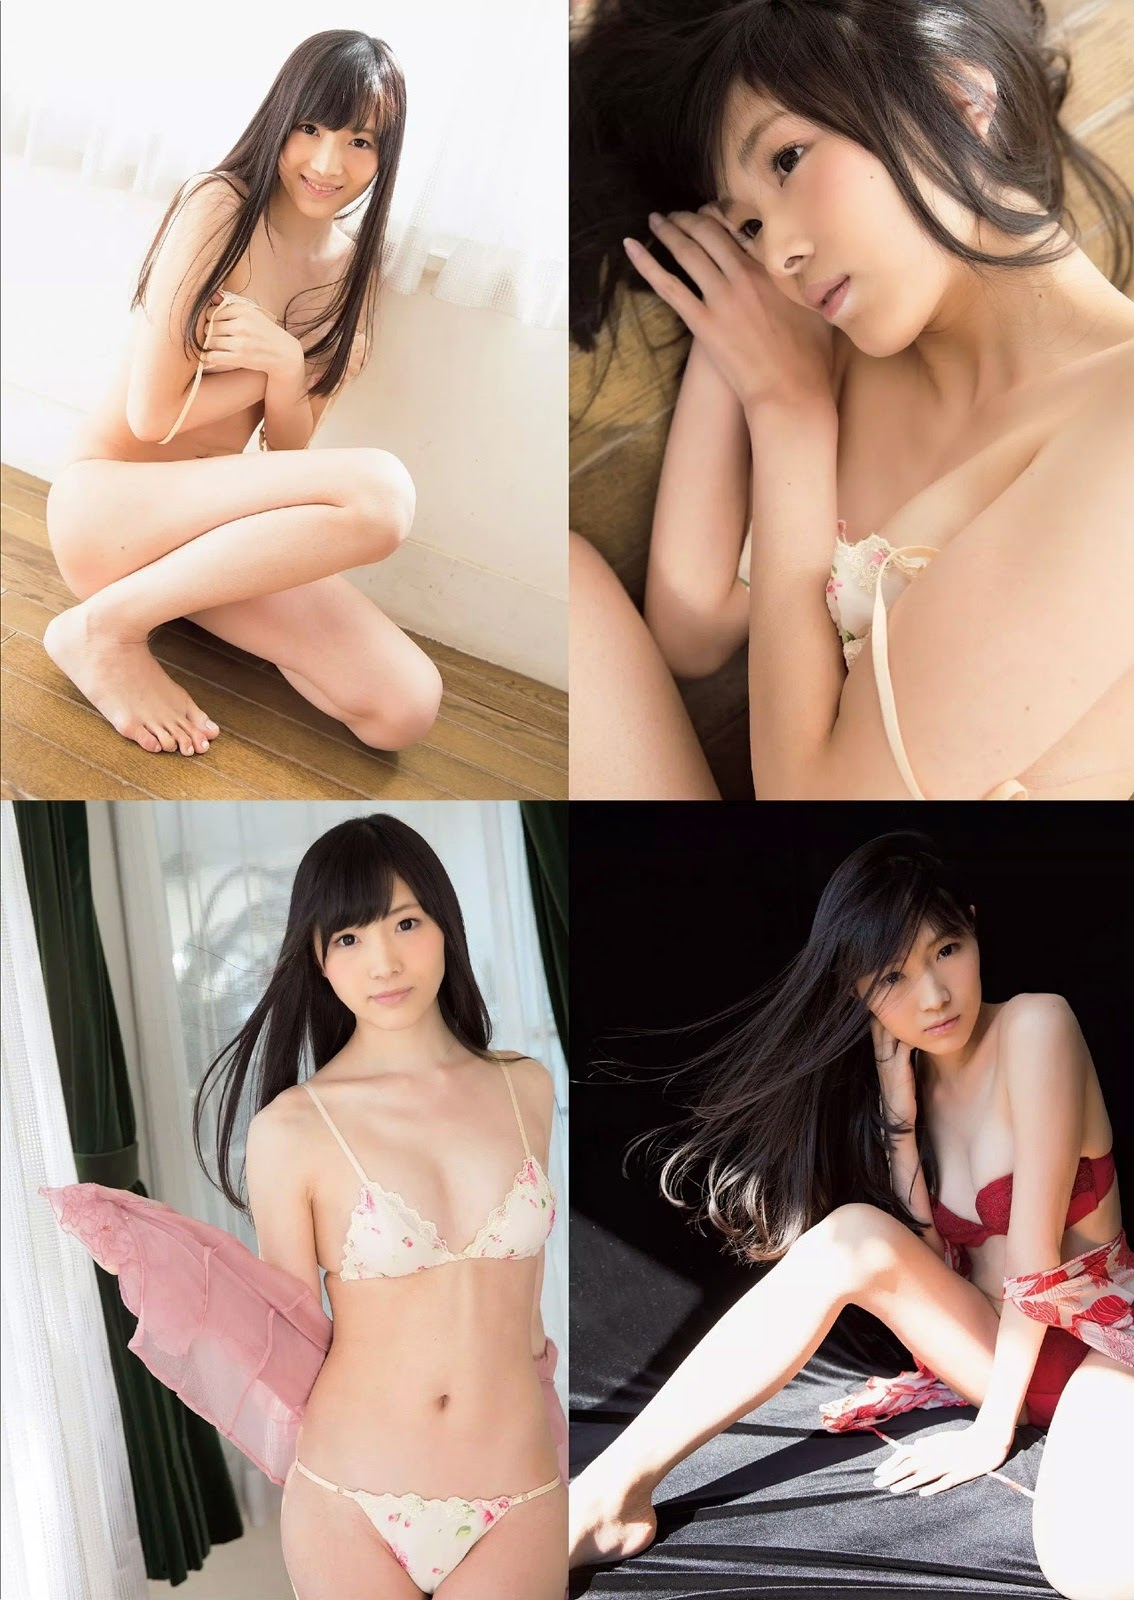 Takeuchi Ami たけうち亜美 Weekly Playboy April 2015 Photos 2